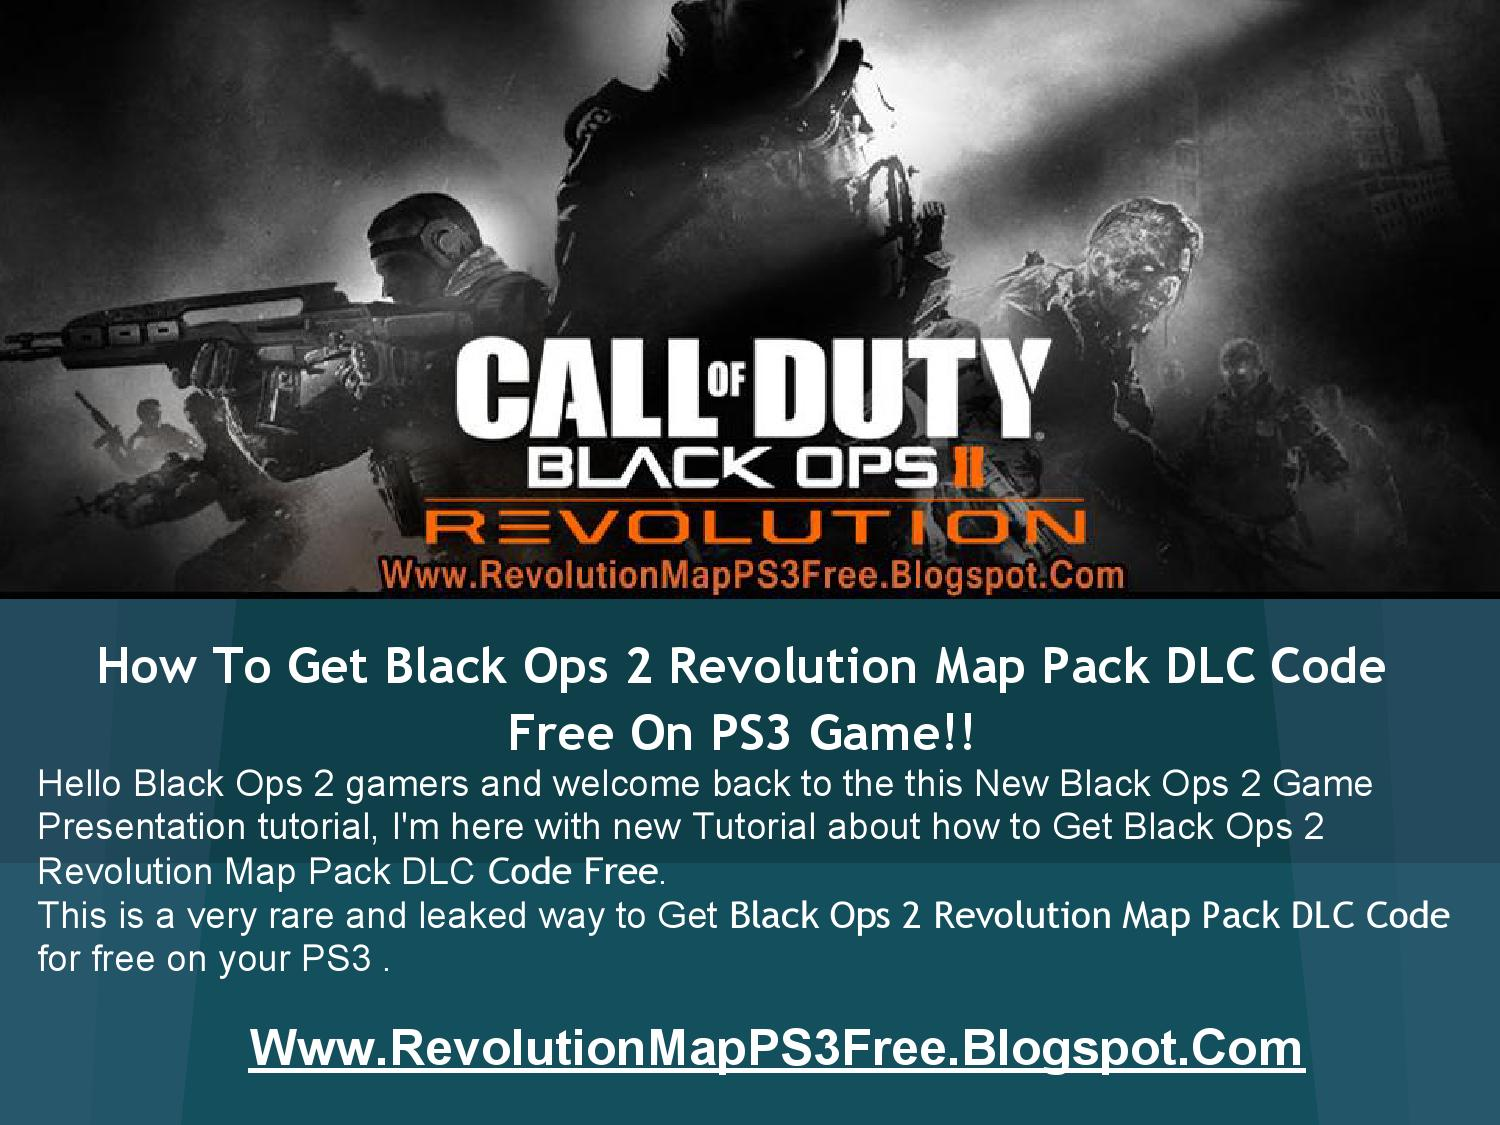 Call of Duty: Black Ops 2 Revolution Map Pack DLC Codes ... Call Of Duty Black Ops Map Packs on call of duty ghosts maps, black ops 1 map packs, all black ops map packs, call duty black ops 3, call of duty blackops 2, call of duty mw3 map packs, call of duty advanced warfare maps, black ops ii map packs, call duty black ops zombies all maps, call of duty bo2 map packs, black ops 2 dlc map packs, call duty ghost multiplayer, call of duty 2 guns, call of duty apocalypse trailer, call of duty 3 zombies maps, bo2 dlc map packs, call of duty all zombie maps, call of duty 2 multiplayer maps, gta map packs, all 4 bo2 map packs,